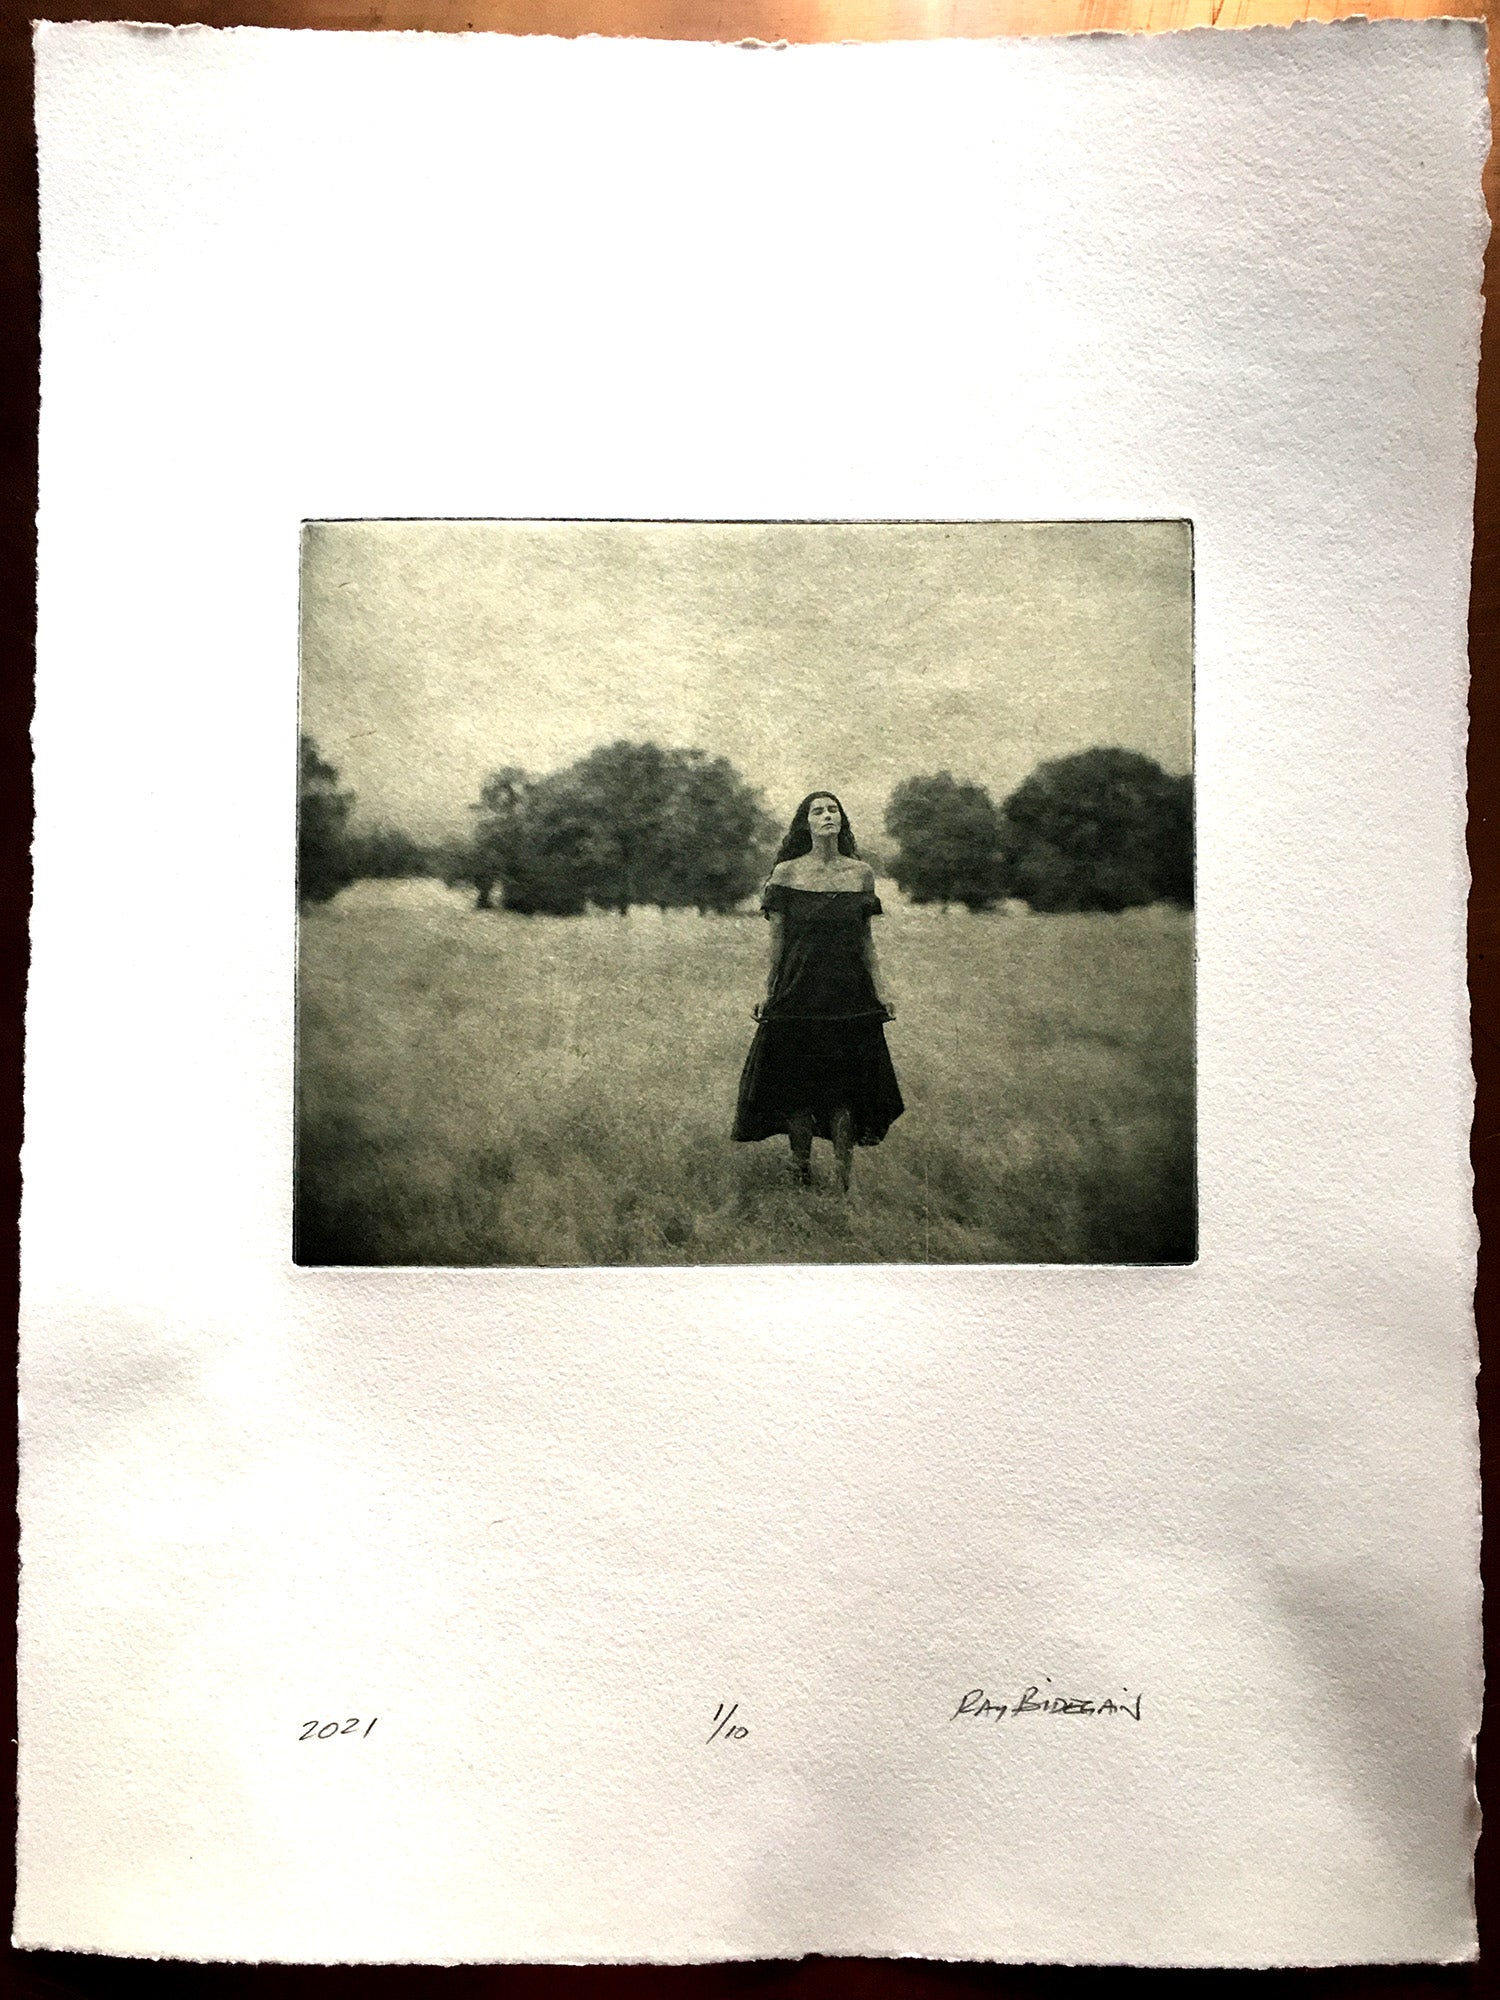 Greeting the day   - Polymer photogravure print - Edition 2021